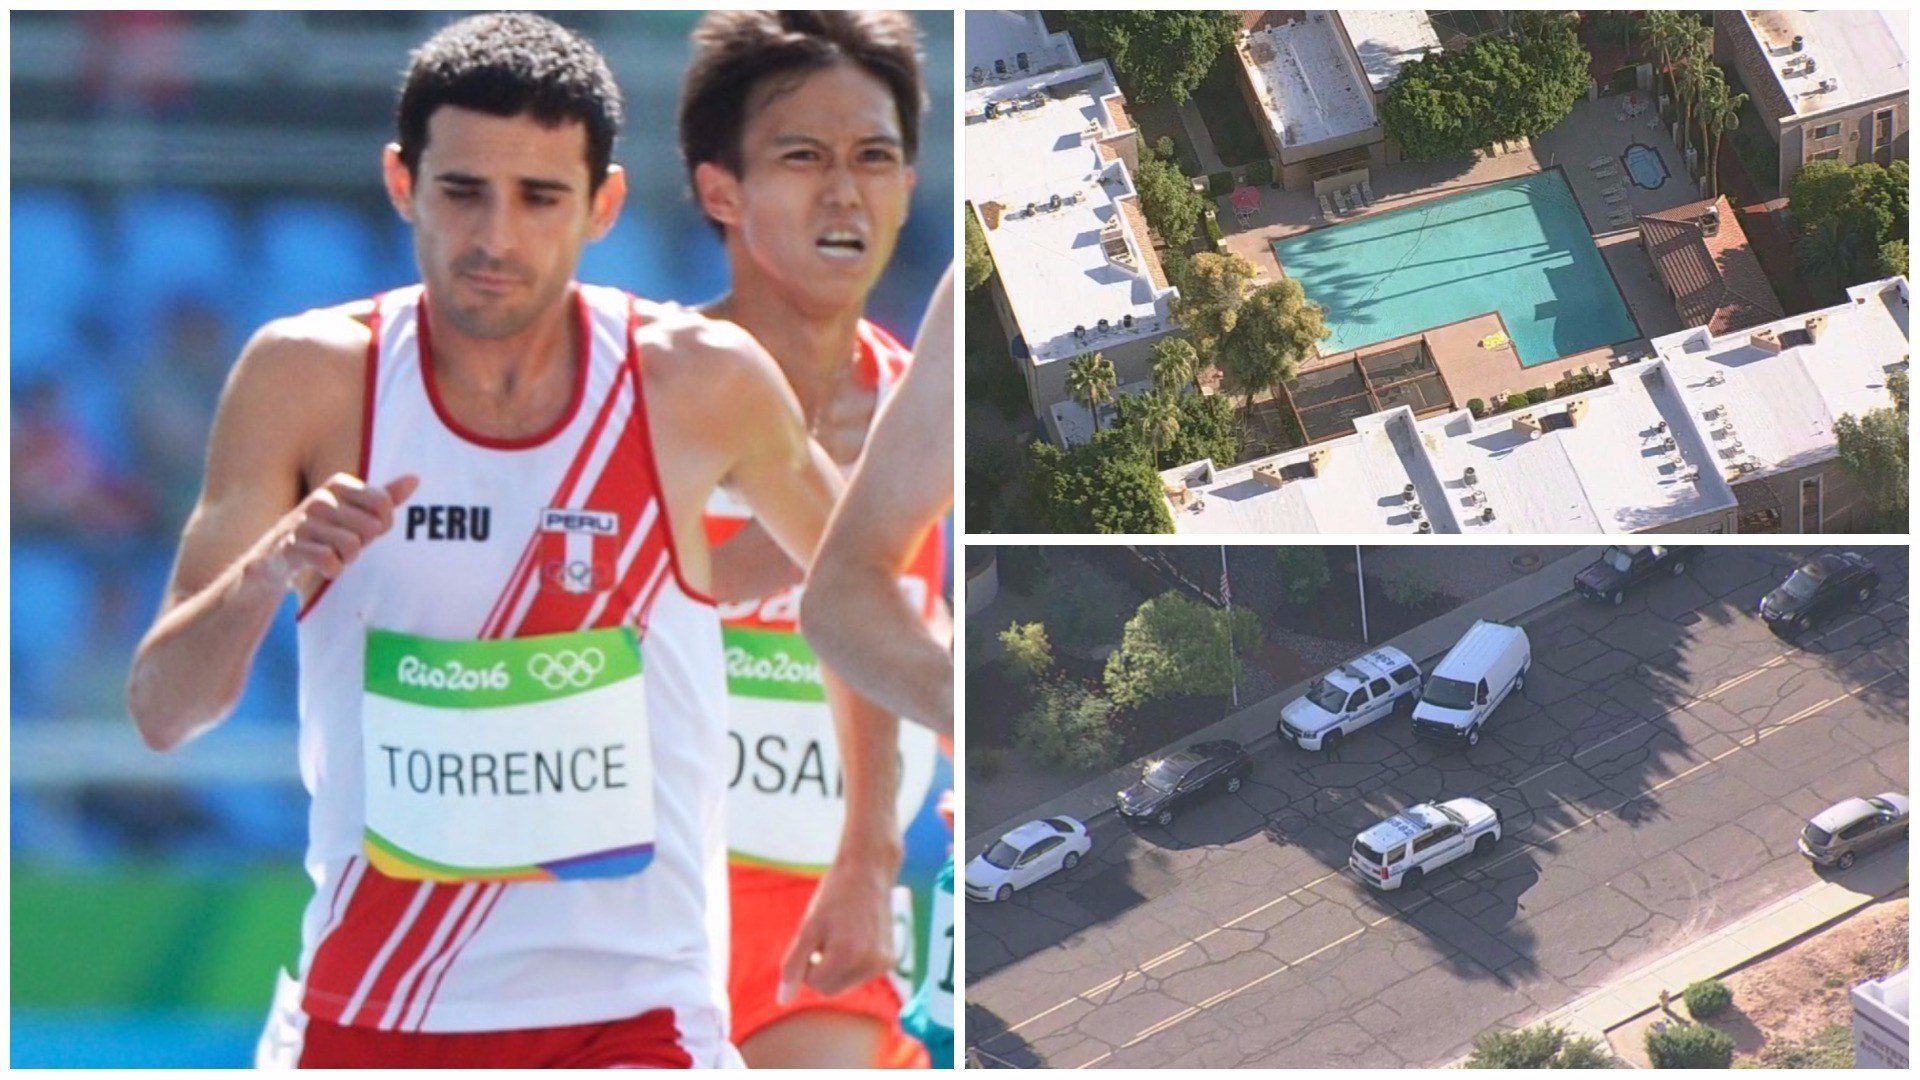 US Track Athlete Found Dead in Swimming Pool